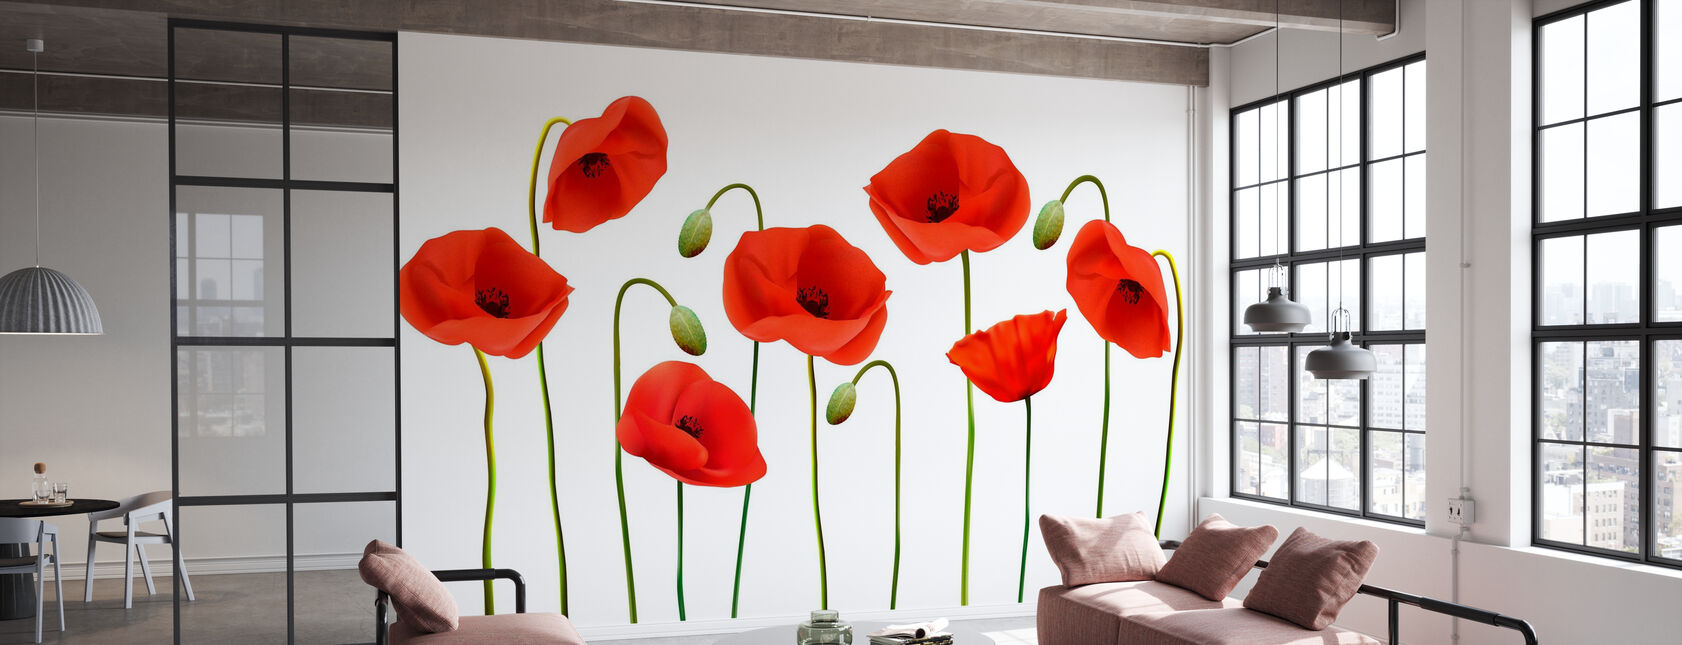 Red Poppies - Wallpaper - Office